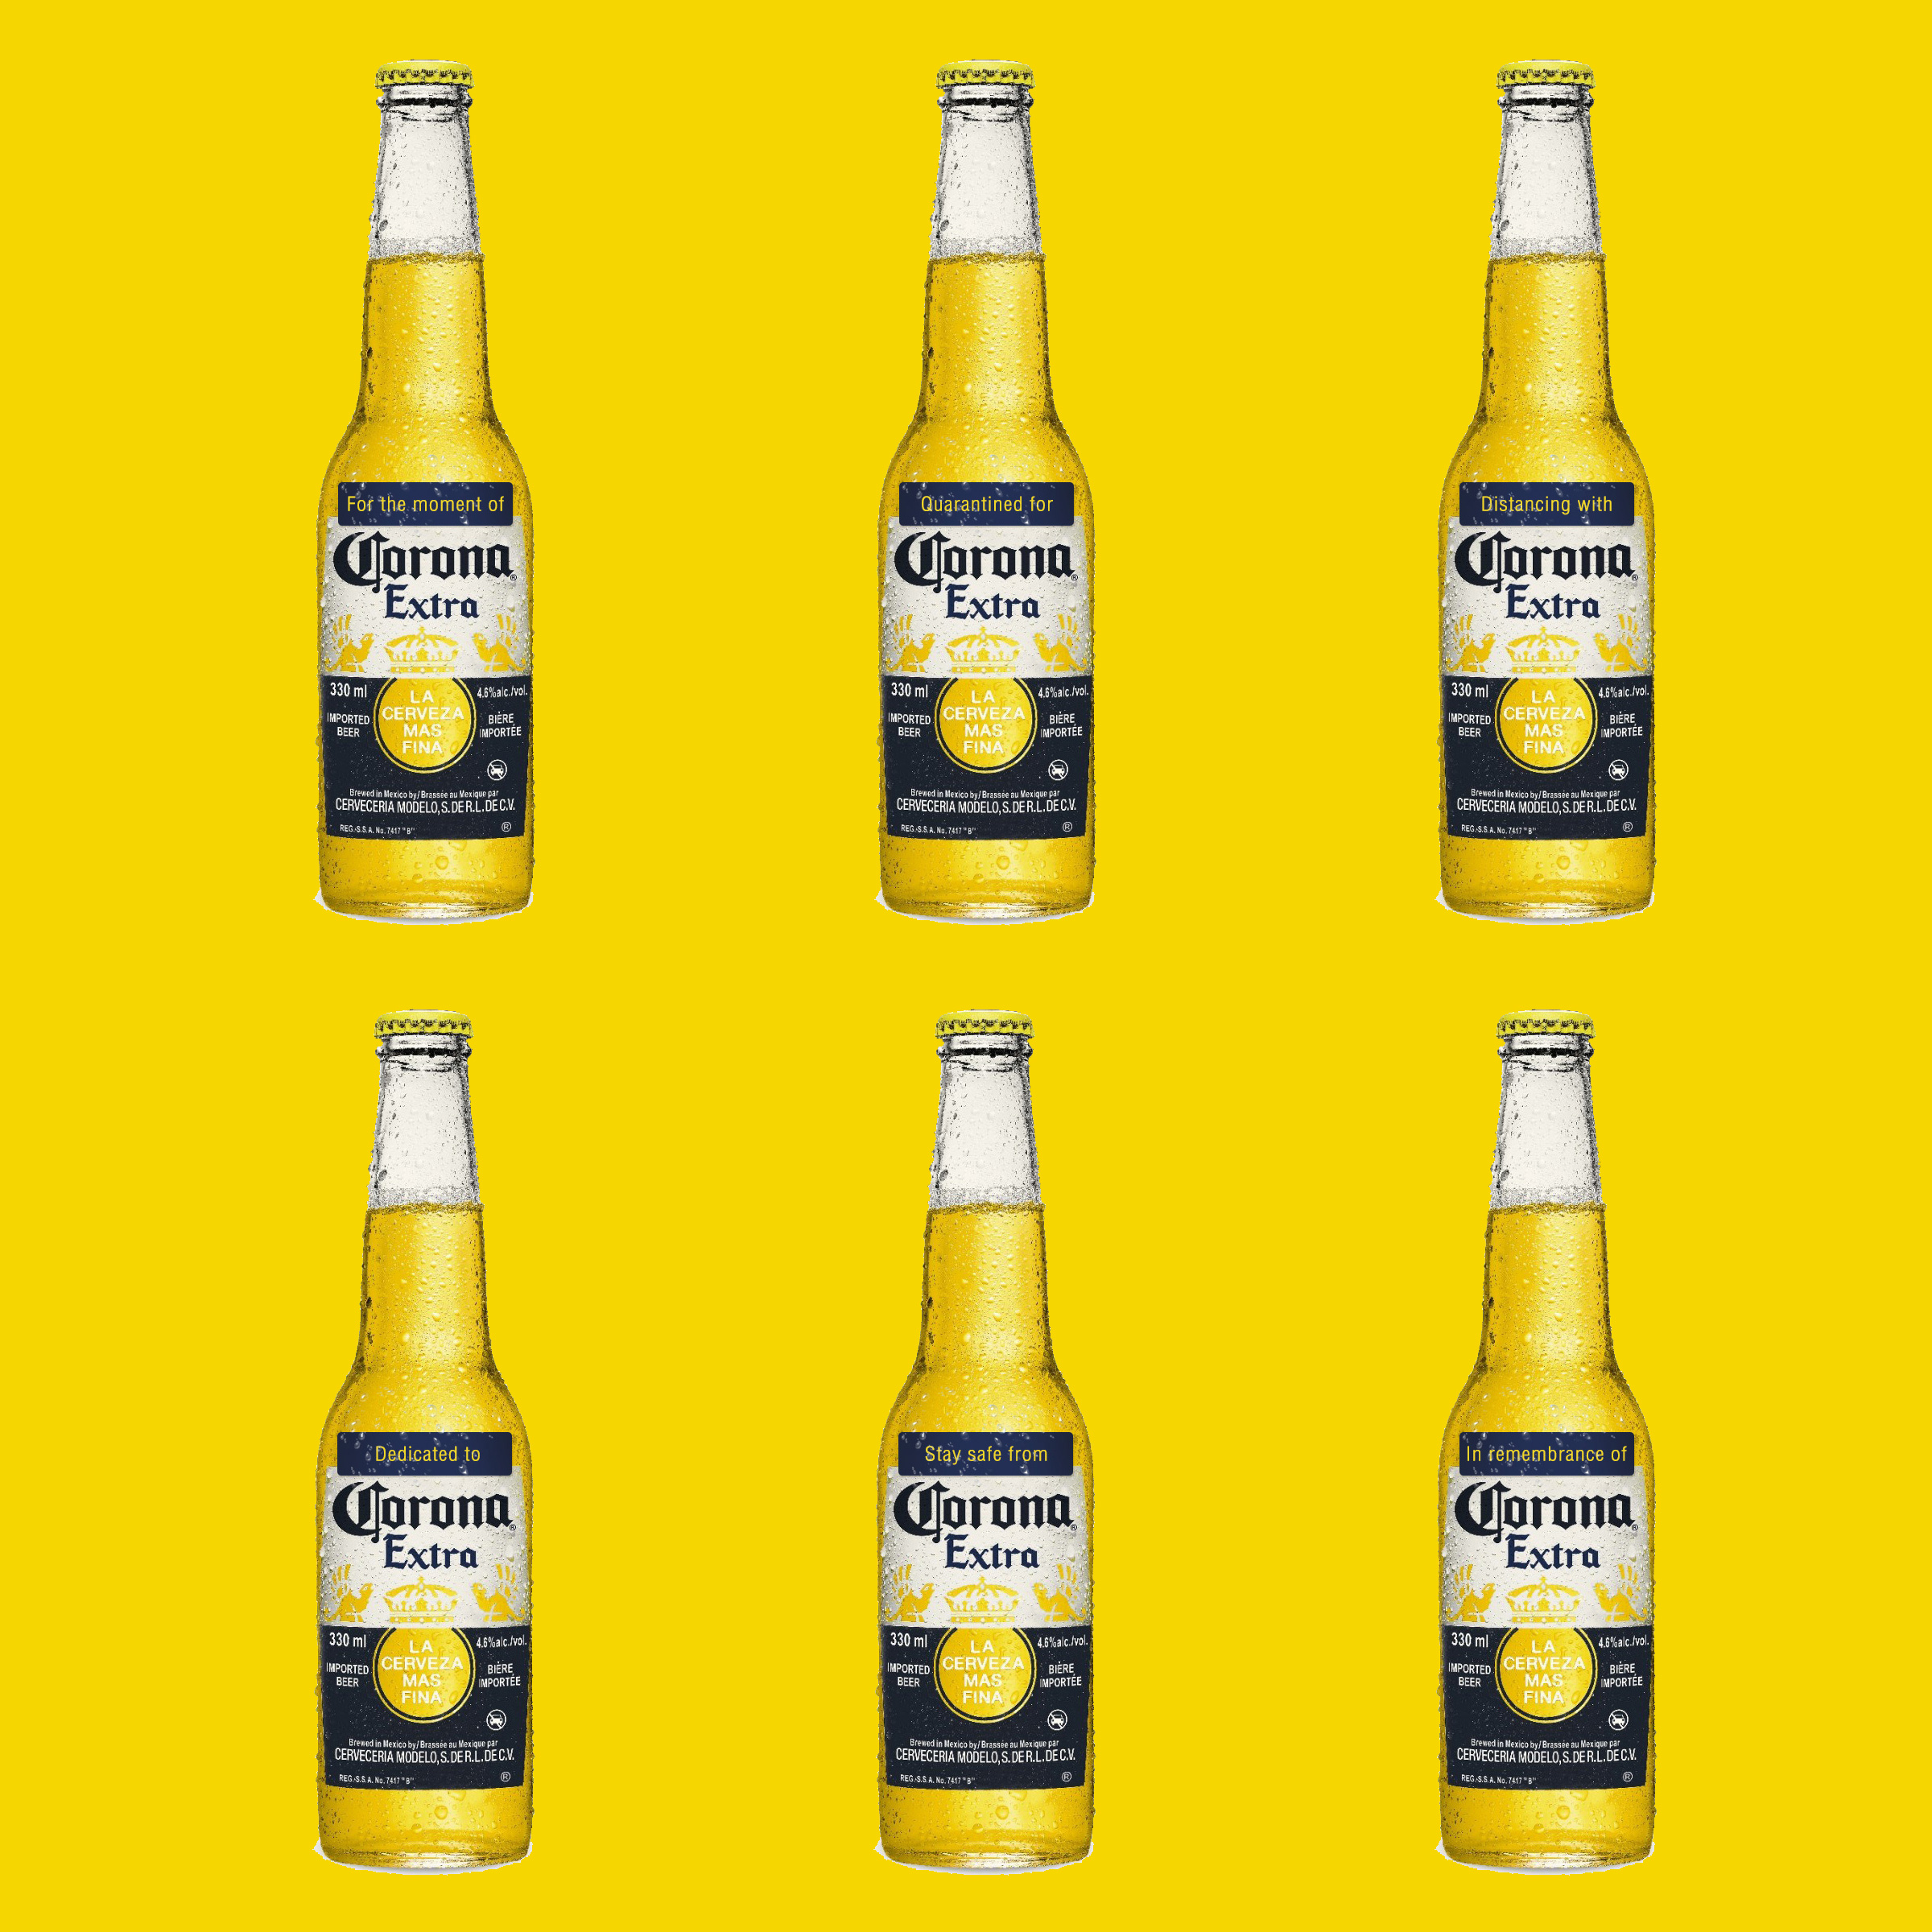 Print Ad: Corona: Having Corona During Corona